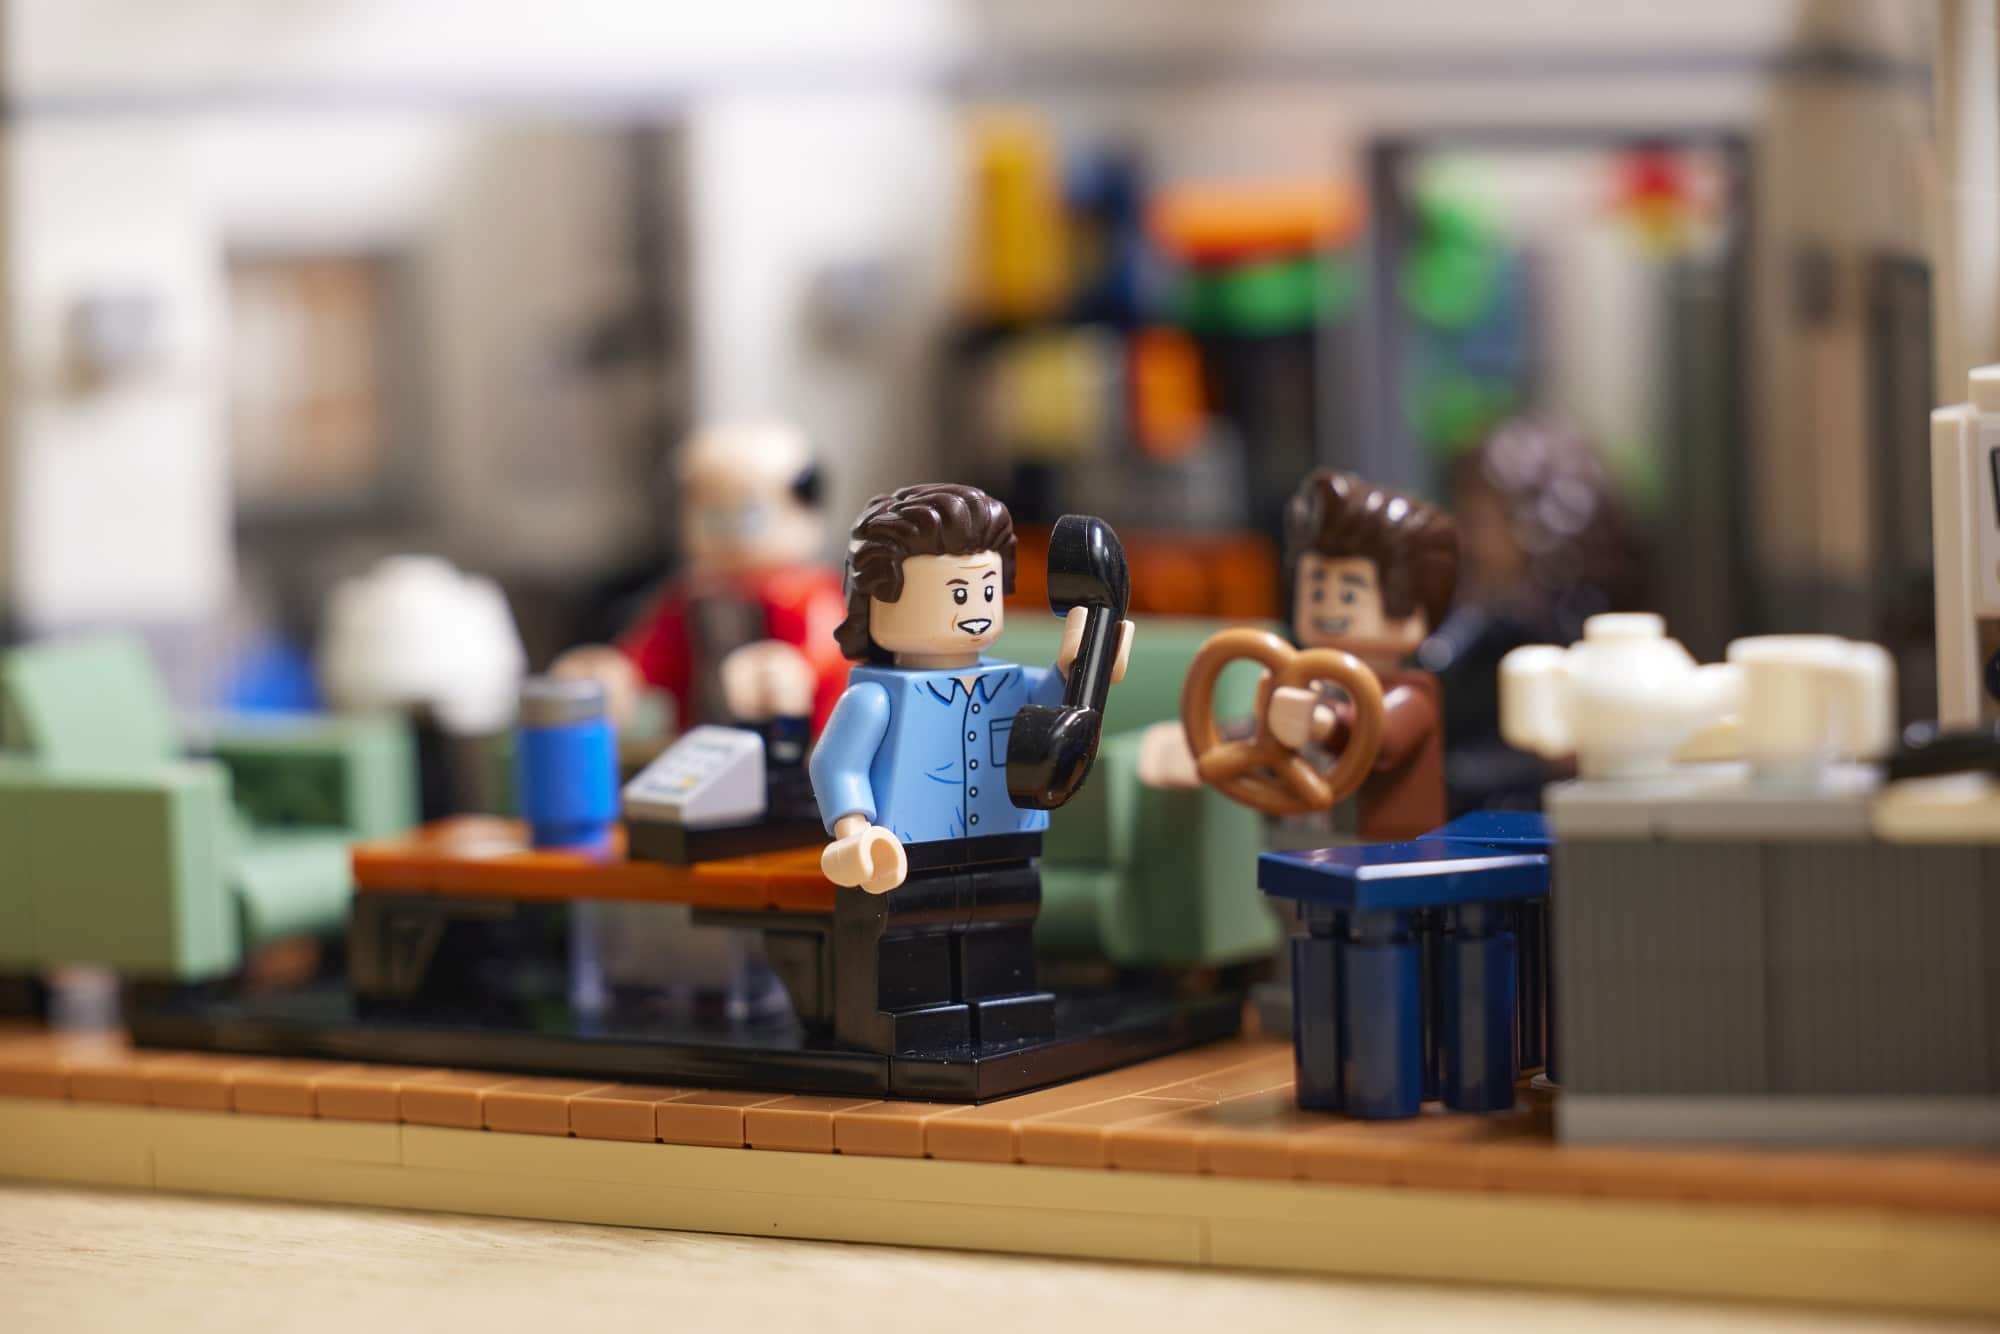 The LEGO Ideas Seinfeld set will transport fans back to '90s New York City 19